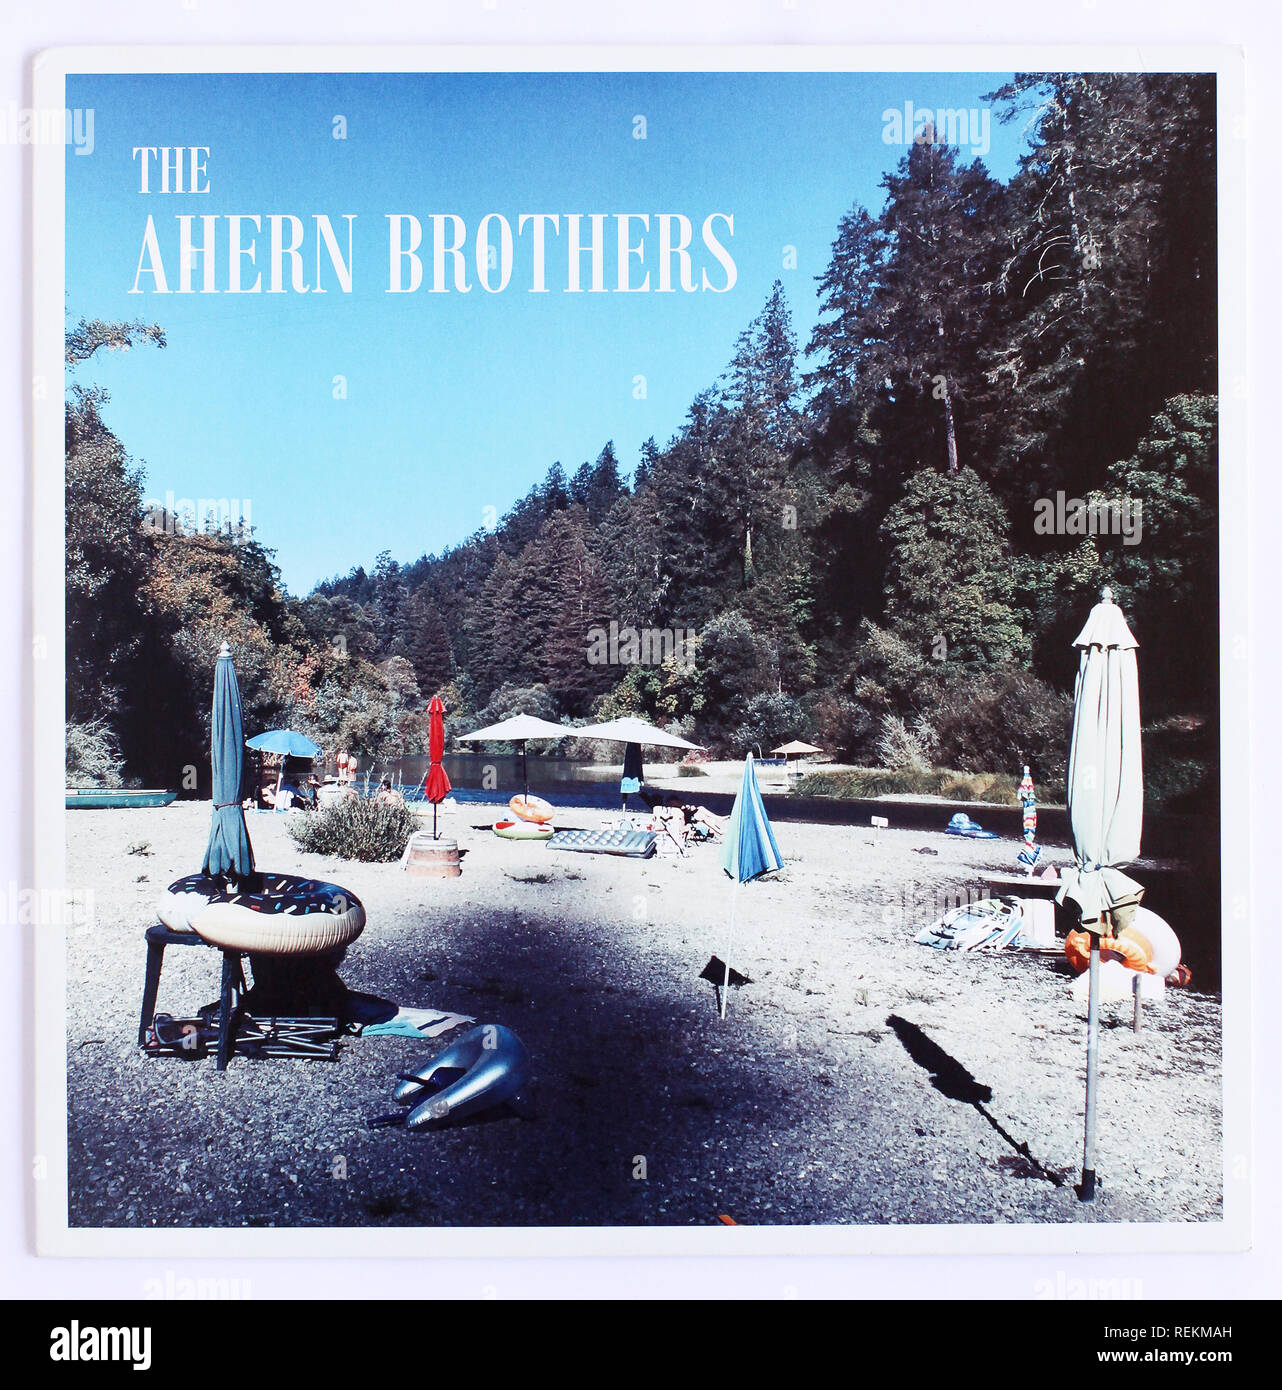 The cover of The Ahern Brothers self-titled 2017 debut album. - Stock Image